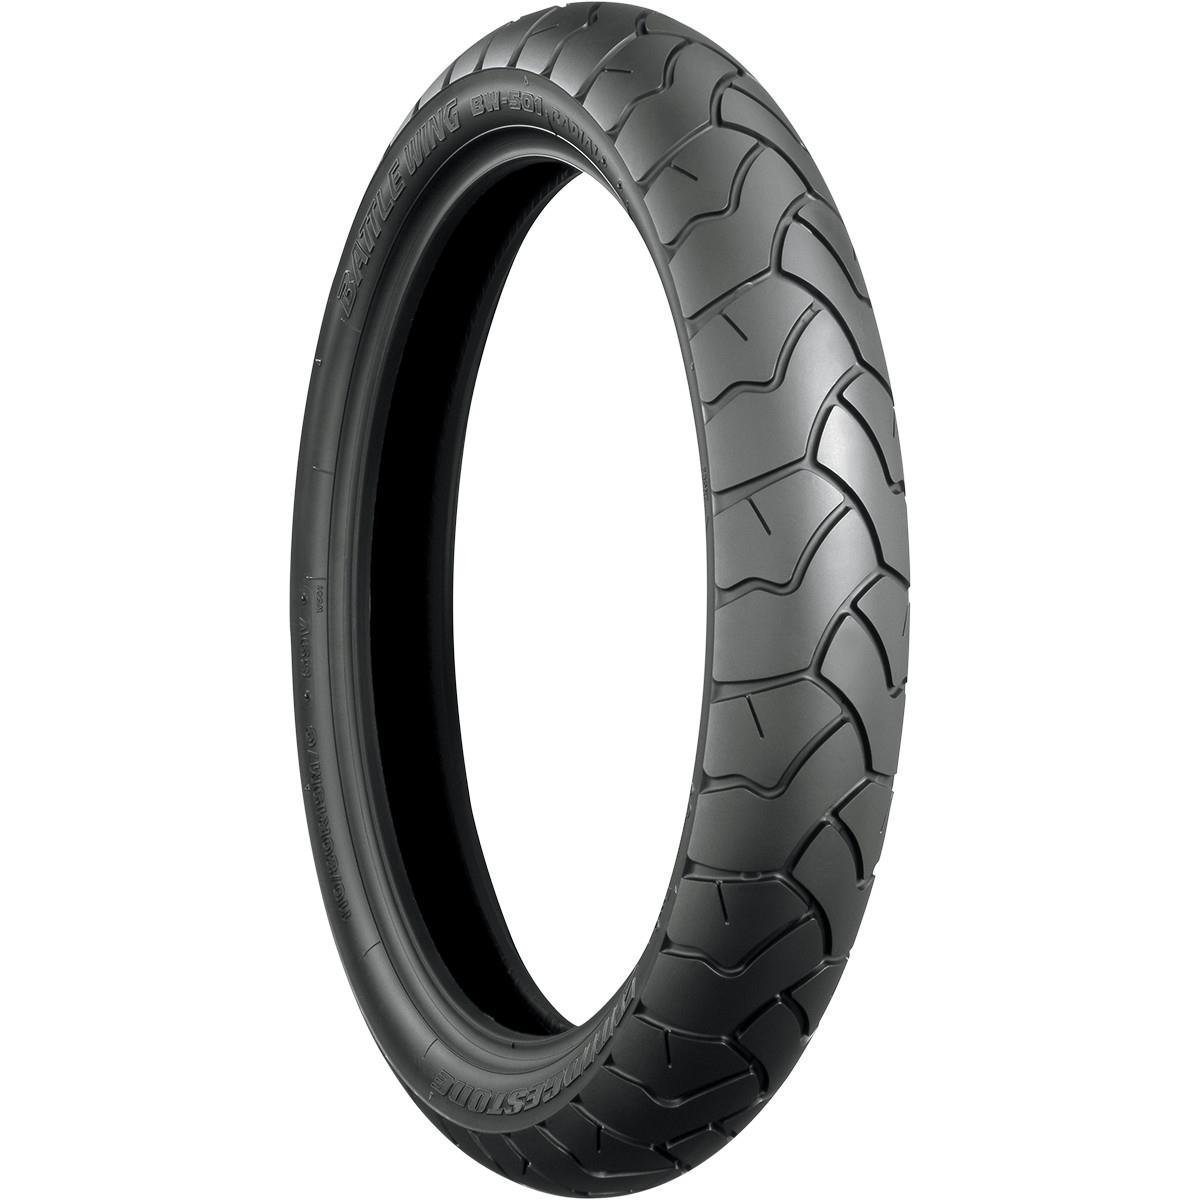 Bridgestone Battle Wing BW501E Tire - Front - 110/80R19 , Position: Front, Tire Size: 110/80-19, Rim Size: 19, Speed Rating: V, Tire Type: Dual Sport, Tire Construction: Radial, Tire Ply: 4, Tire Application: All-Terrain 004404